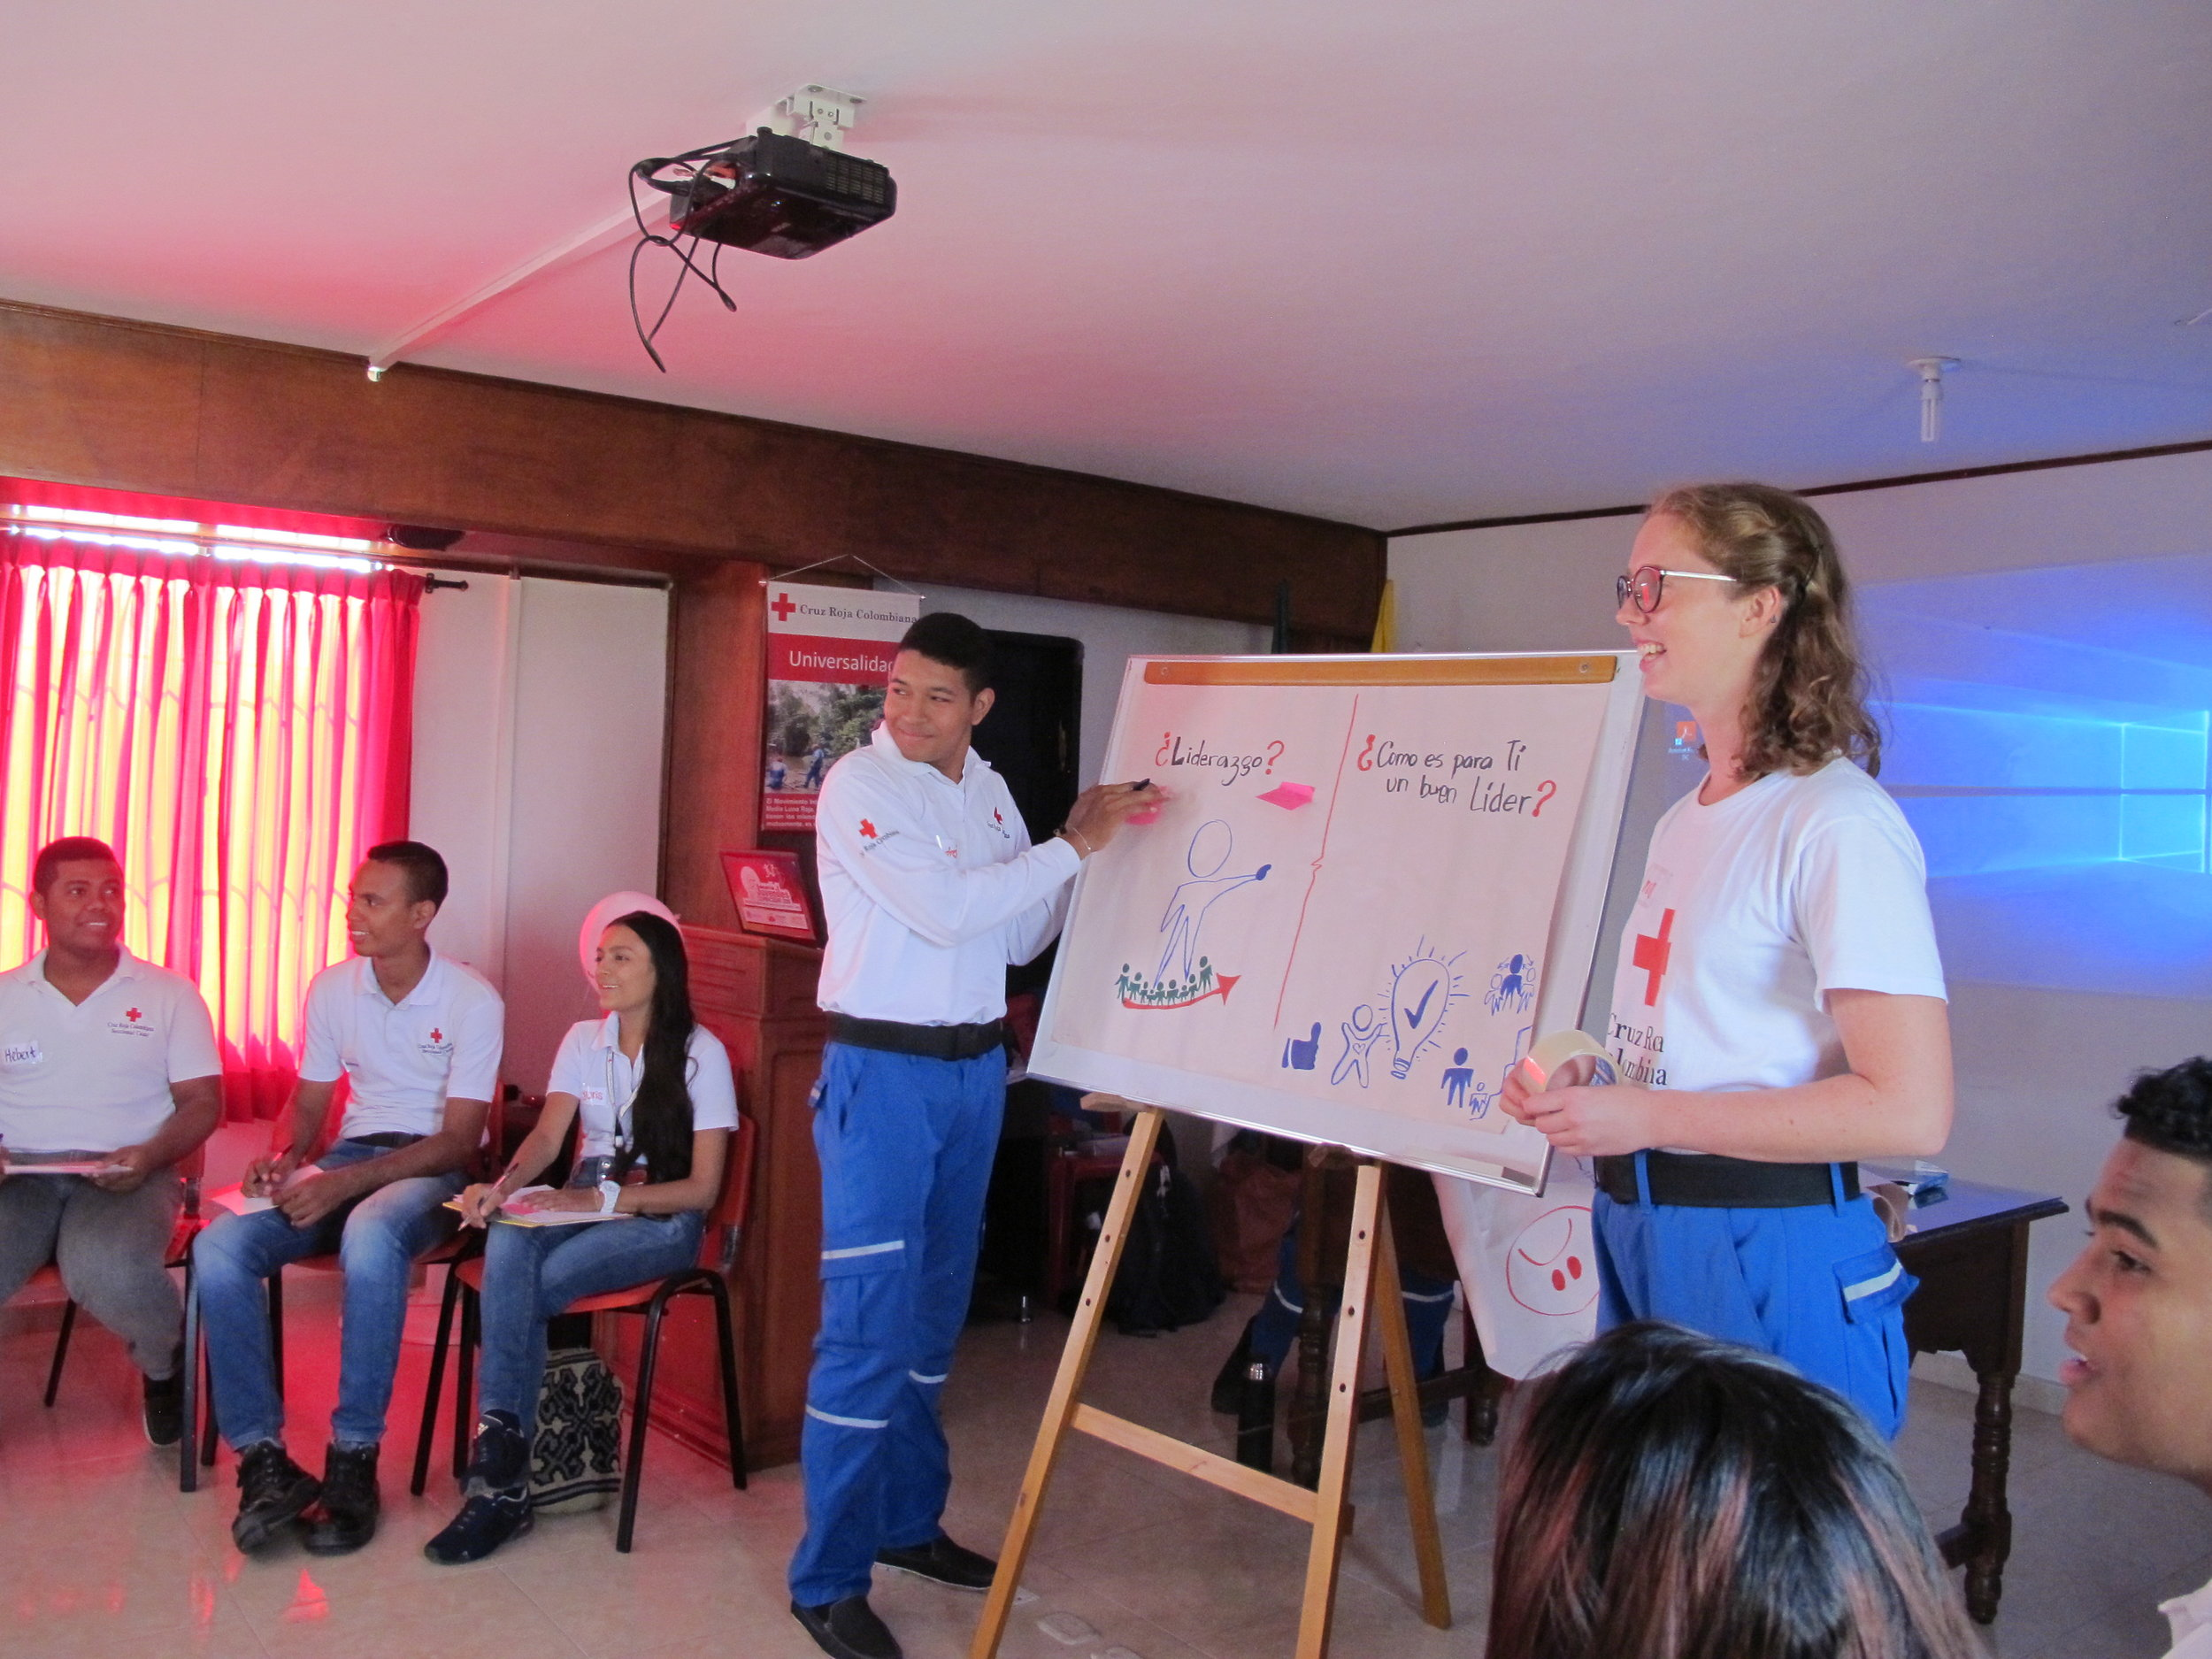 Kaia facilitating an activity in Valledupar.